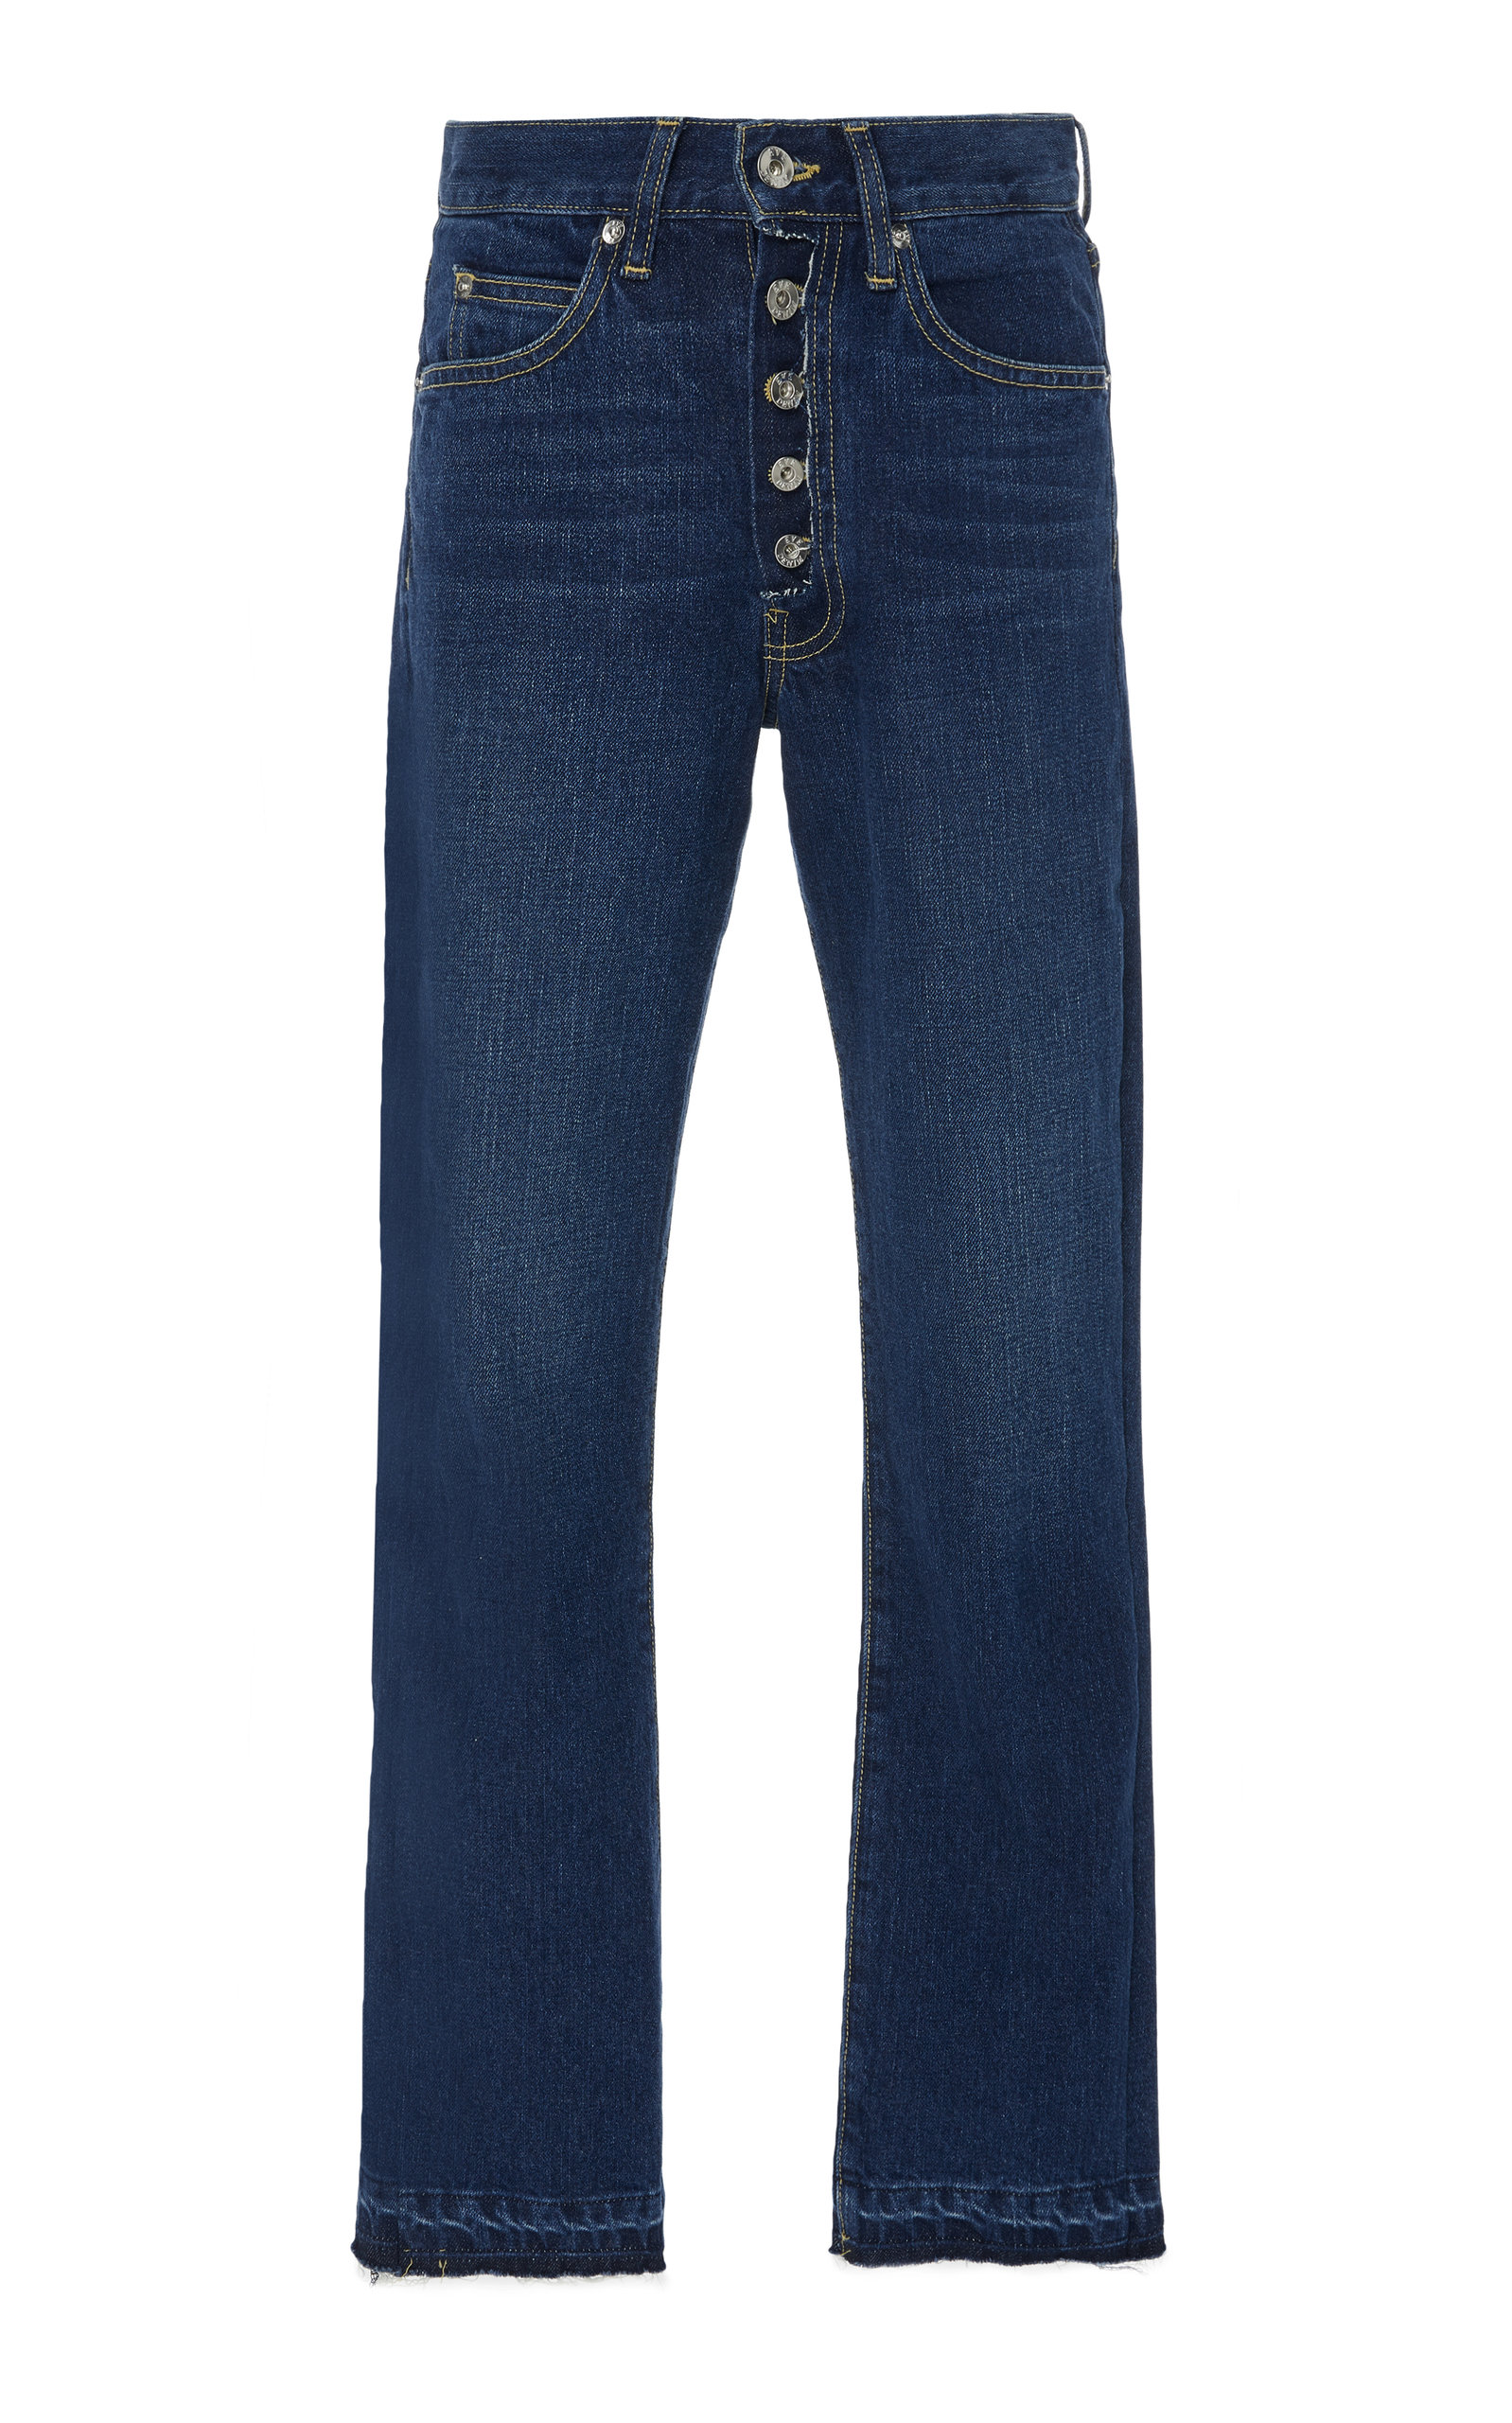 EVE DENIM SILVER BULLET HIGH-RISE SKINNY JEANS